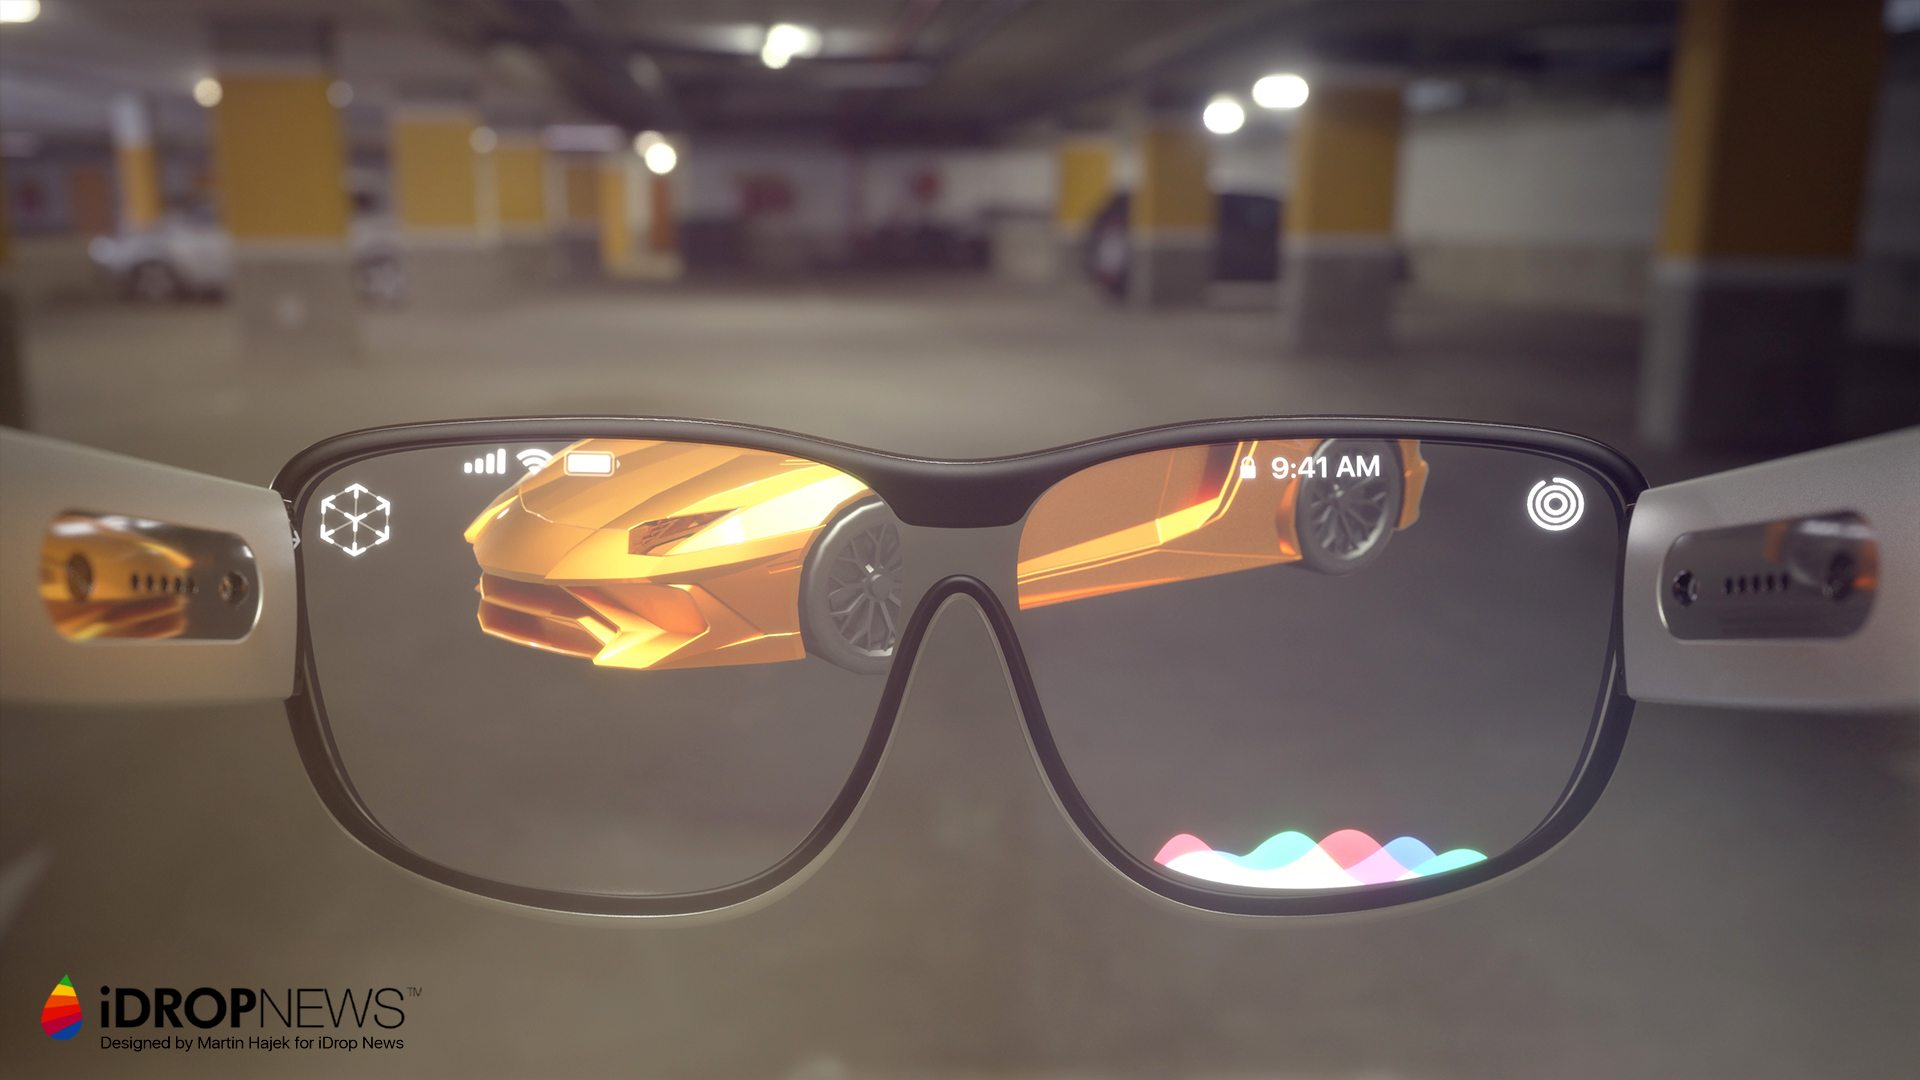 Apple-Glass-AR-Glasses-iDrop-News-x-Martin-Hajek-8jpg